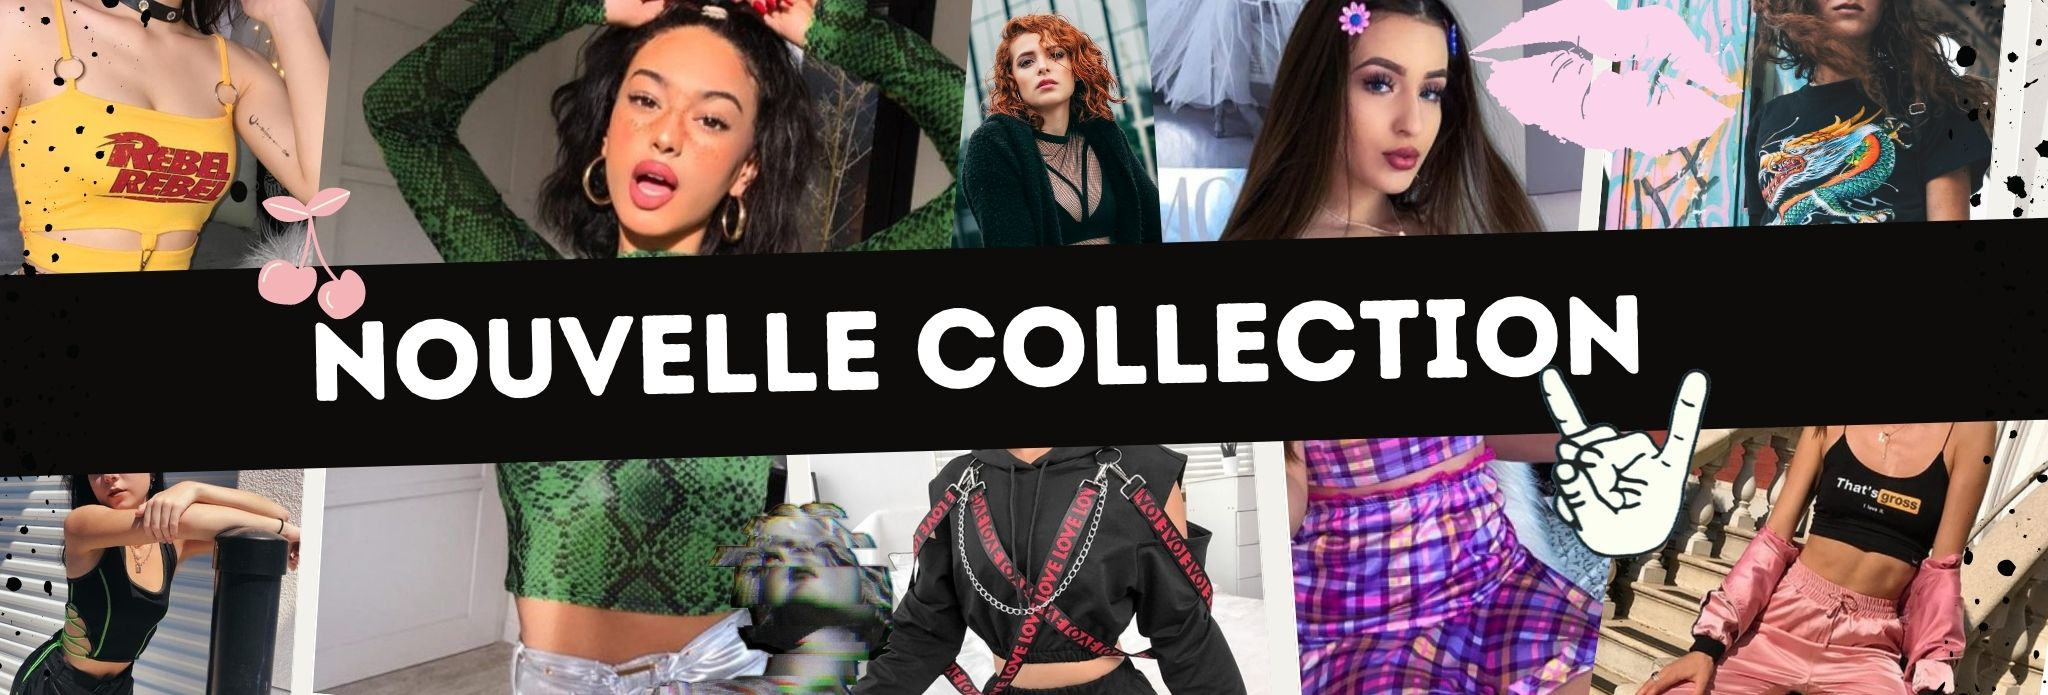 Nouvelle collection de vêtements Grunges, gothiques, aesthetics, style e-girl et tumblr